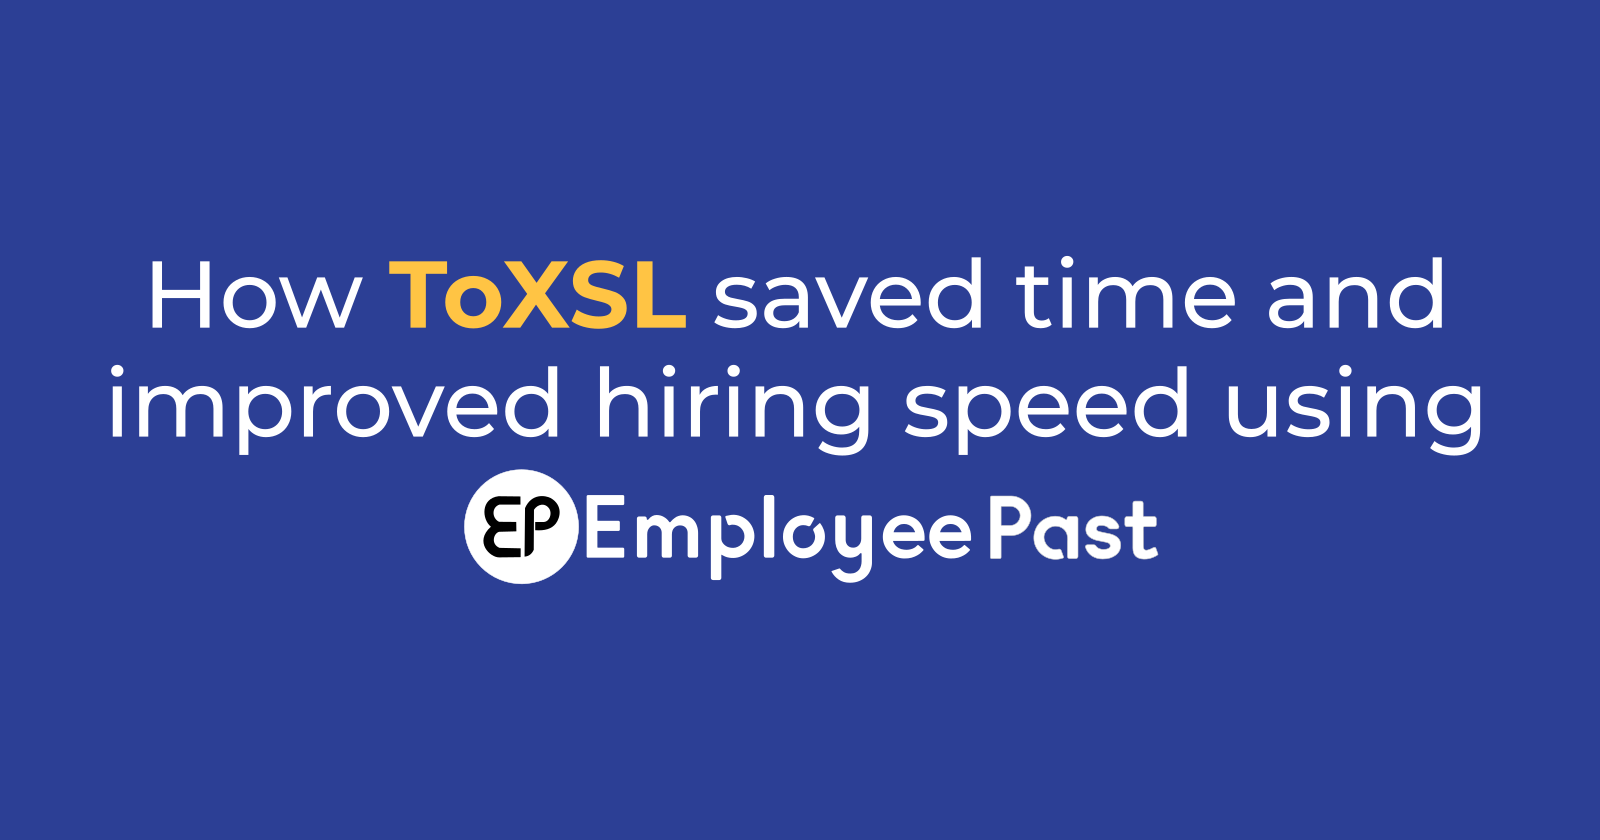 How ToXSL saved time and improved hiring speed using EmployeePast?